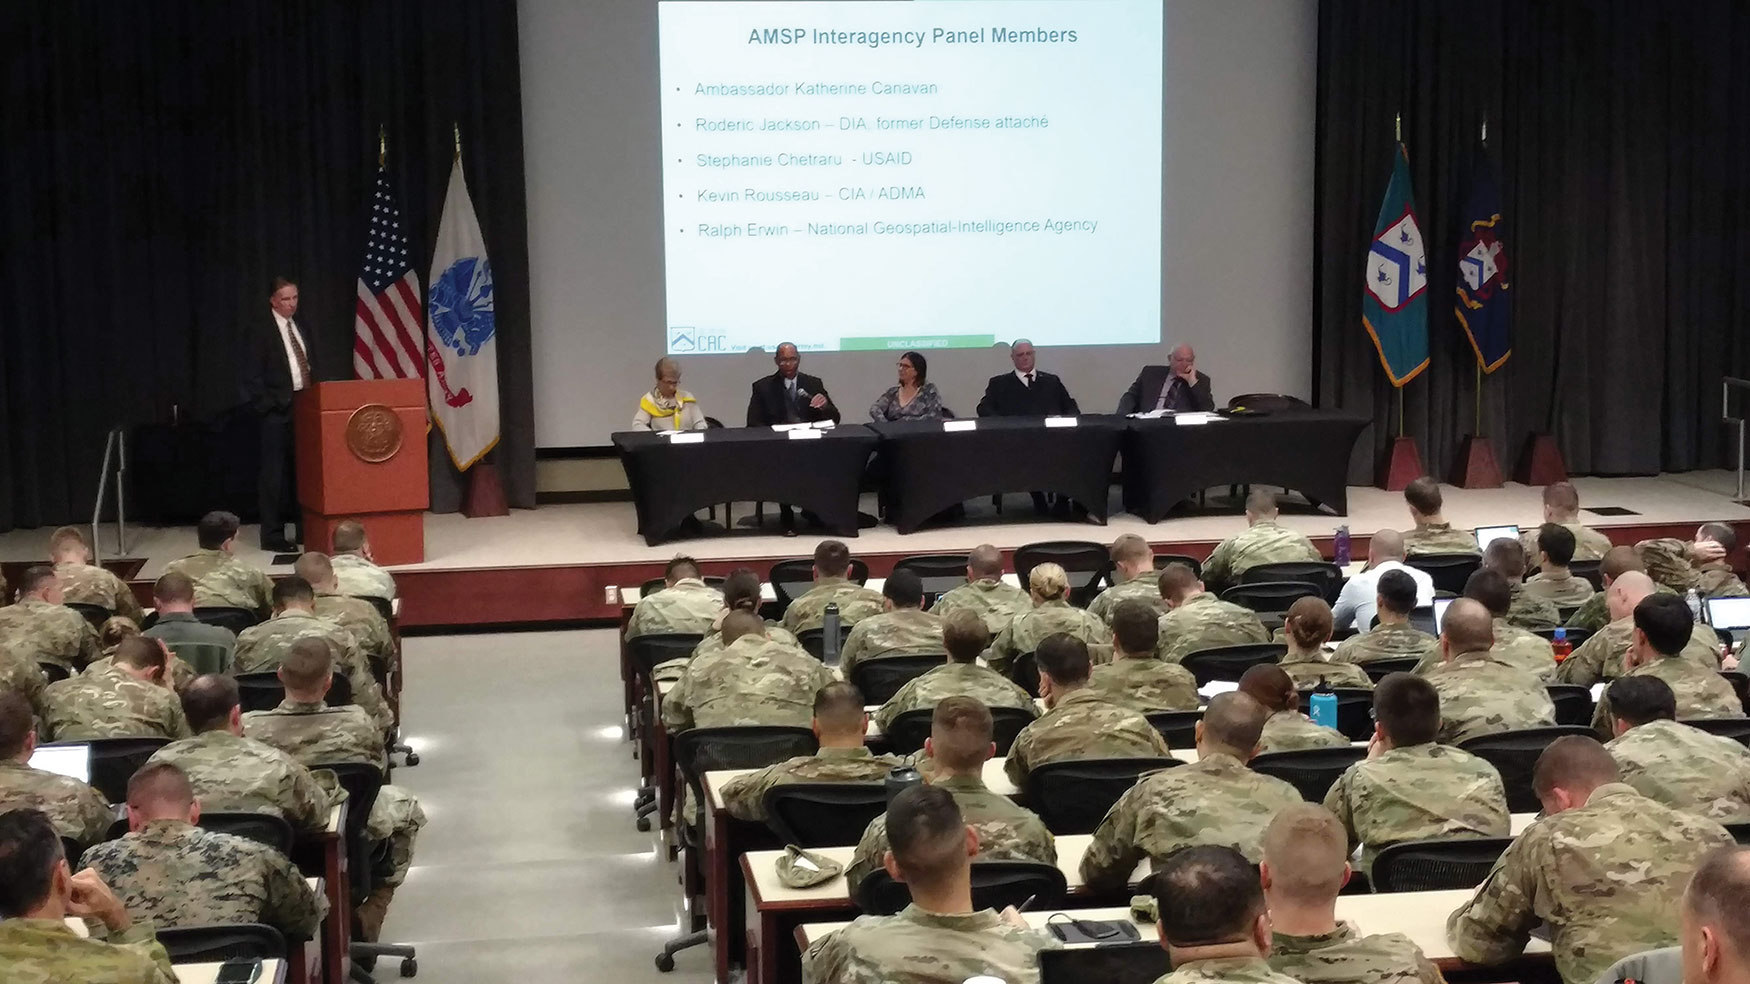 Ambassador Canavan participates in a School for Advanced Military Studies (SAMS) Interagency Panel, discussing interagency operations along with representatives from the CIA, Defense Intelligence Agency (DIA), U.S. Agency for International Development (USAID) and the National Geospatial-Intelligence Agency (NGA).